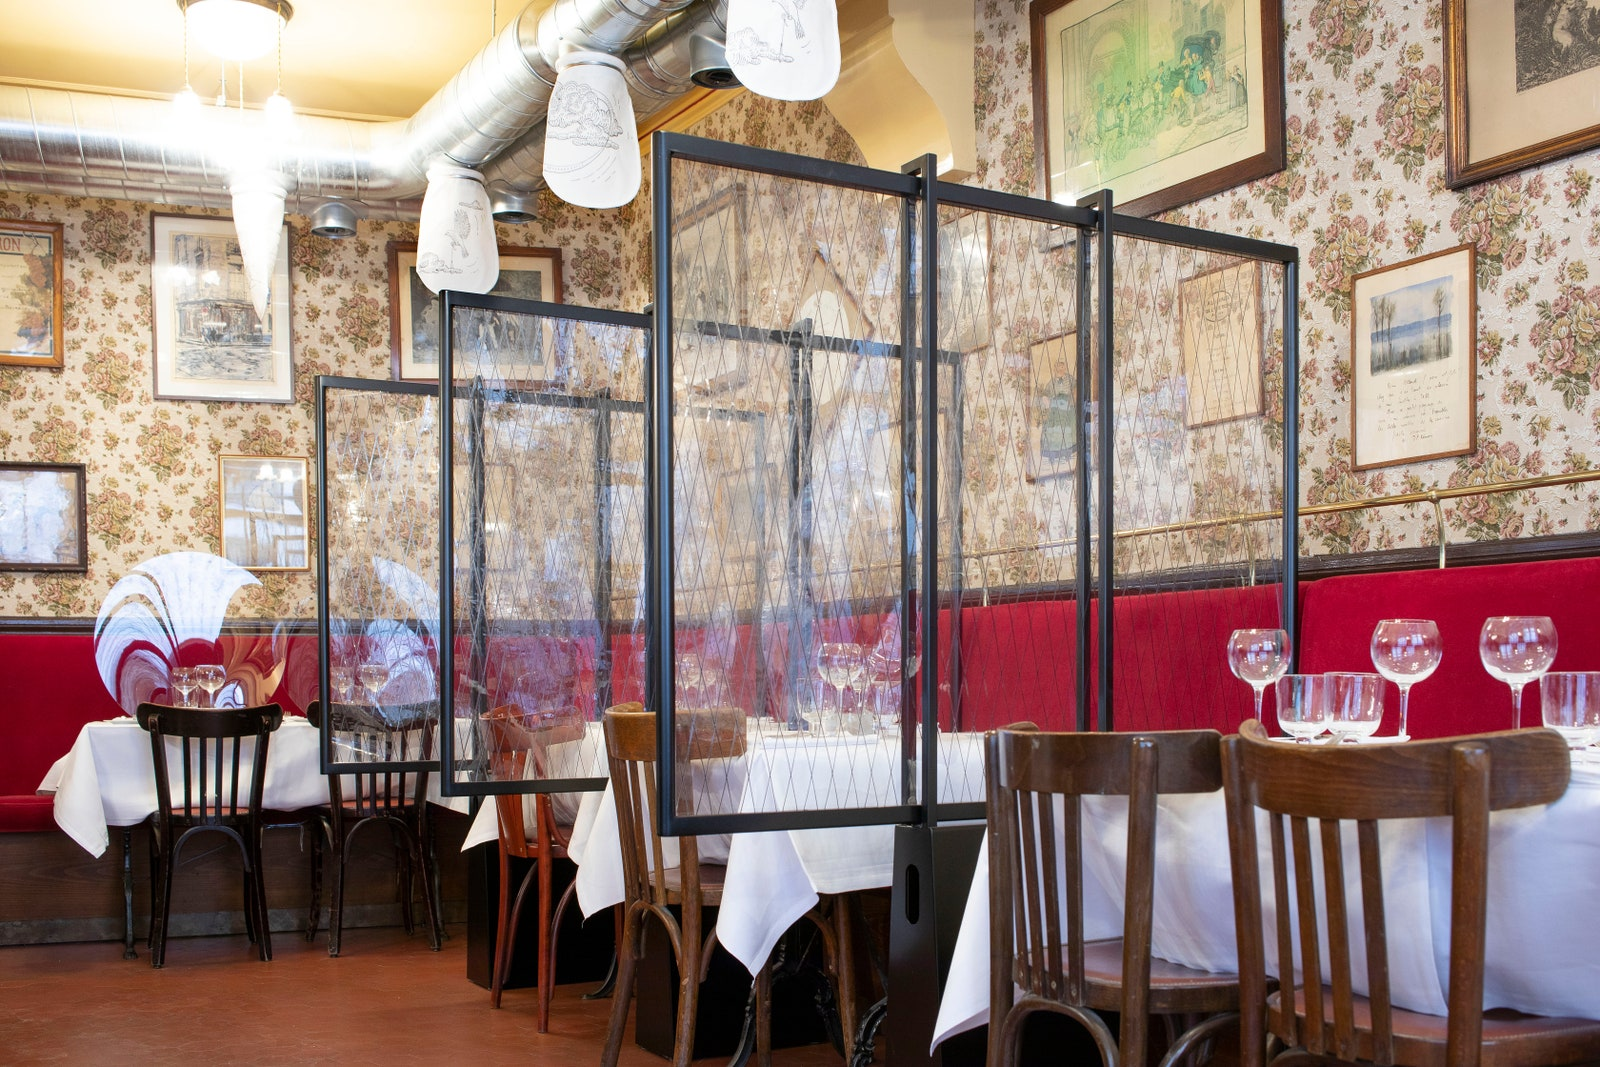 restaurants partitions during covid19 used for social distancing